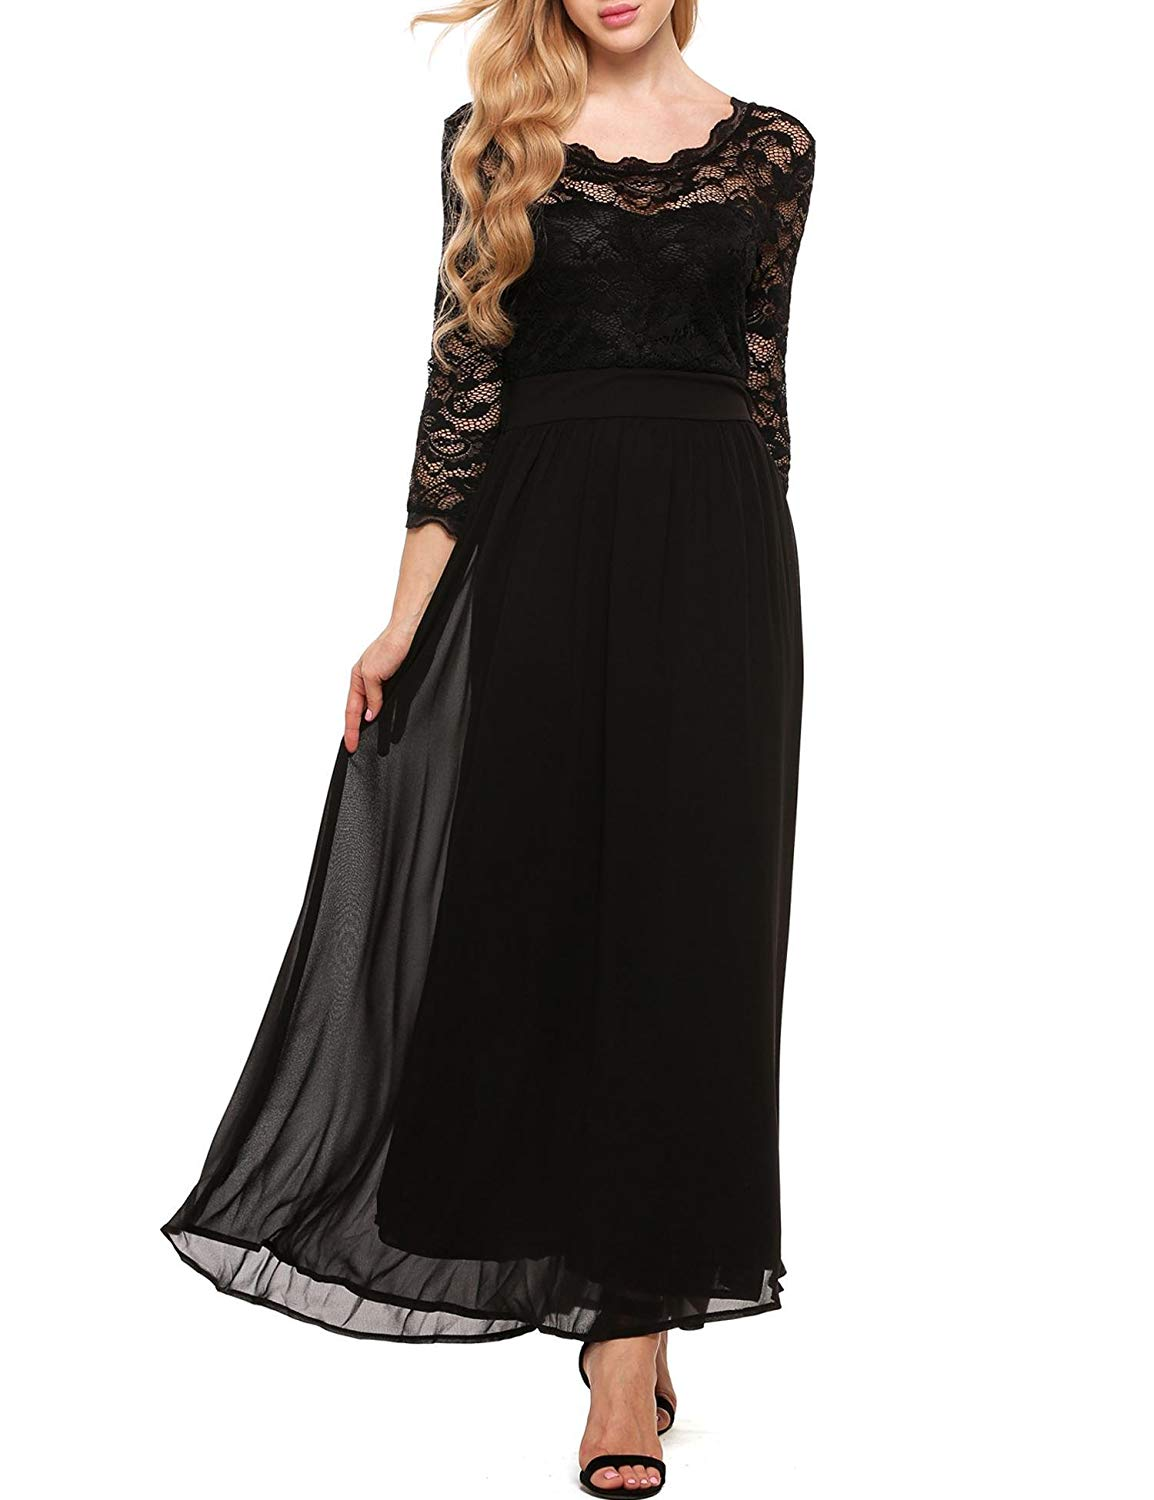 89e0dbfb41414 Get Quotations · Meharbour Blue Lace Maxi Dress Long Sleeve Floral Lace Maxi  Long Dresses for Women Ladies Black